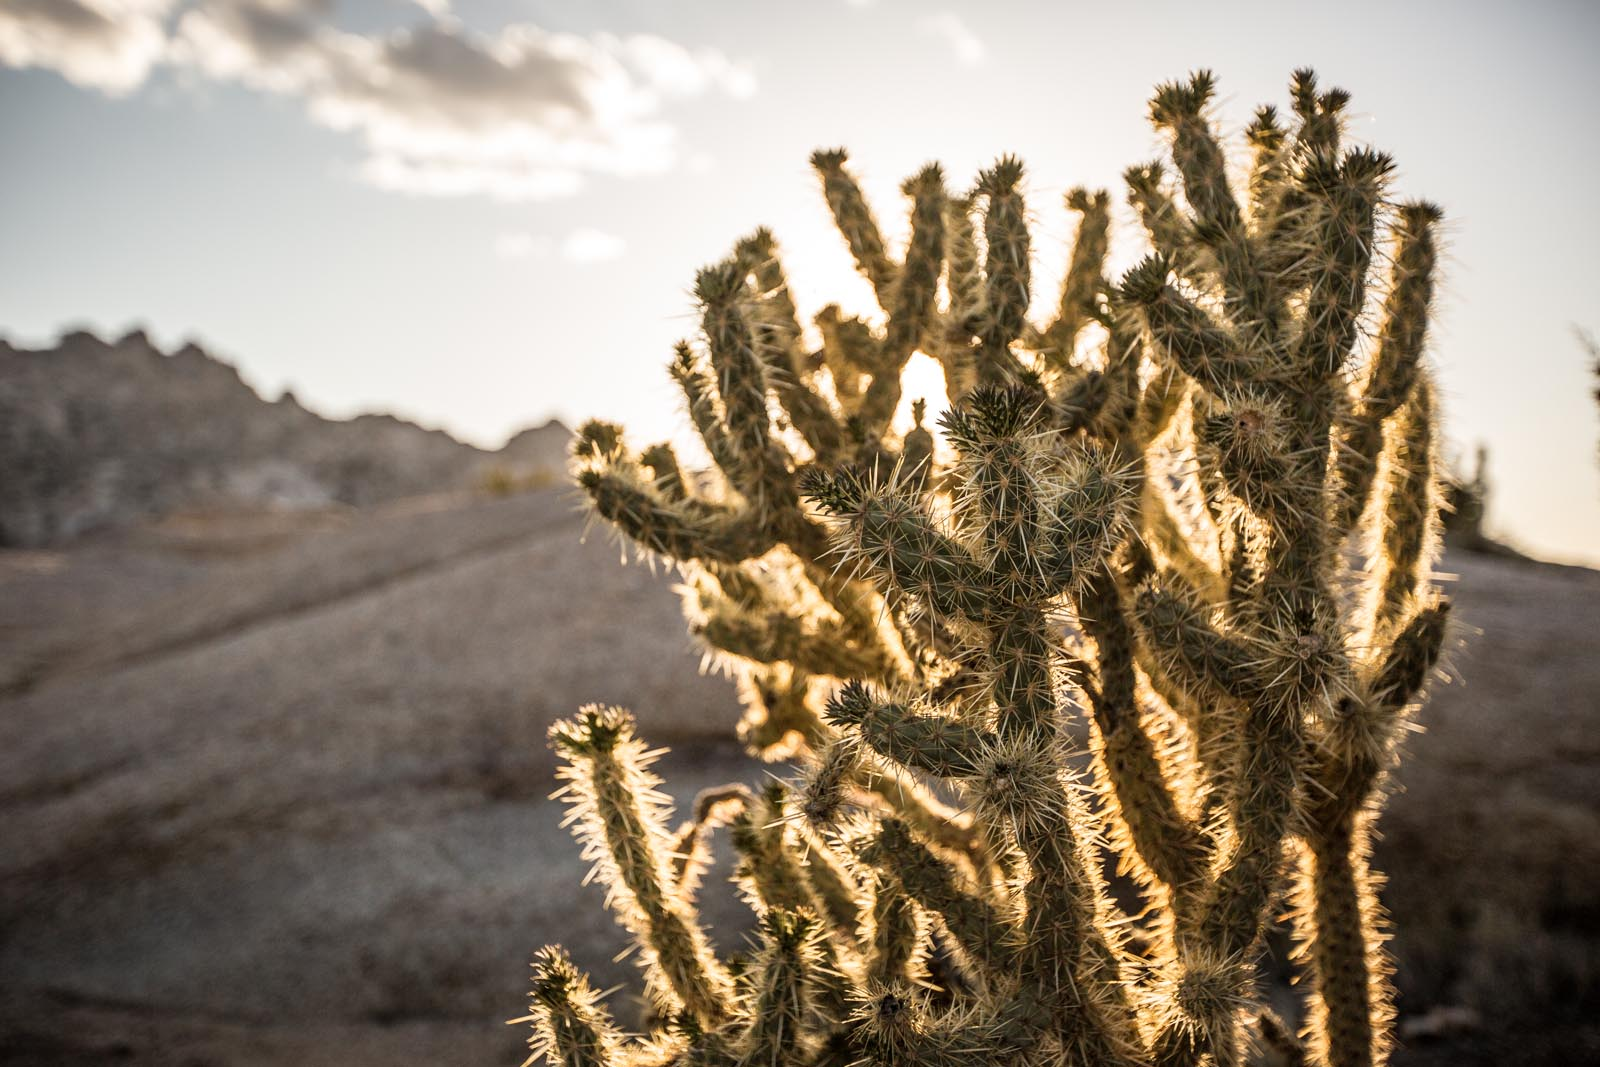 Jumping cholla by our campsite. Apparently this stuff is lethal, but it sure is beautiful -- just don't get too close.